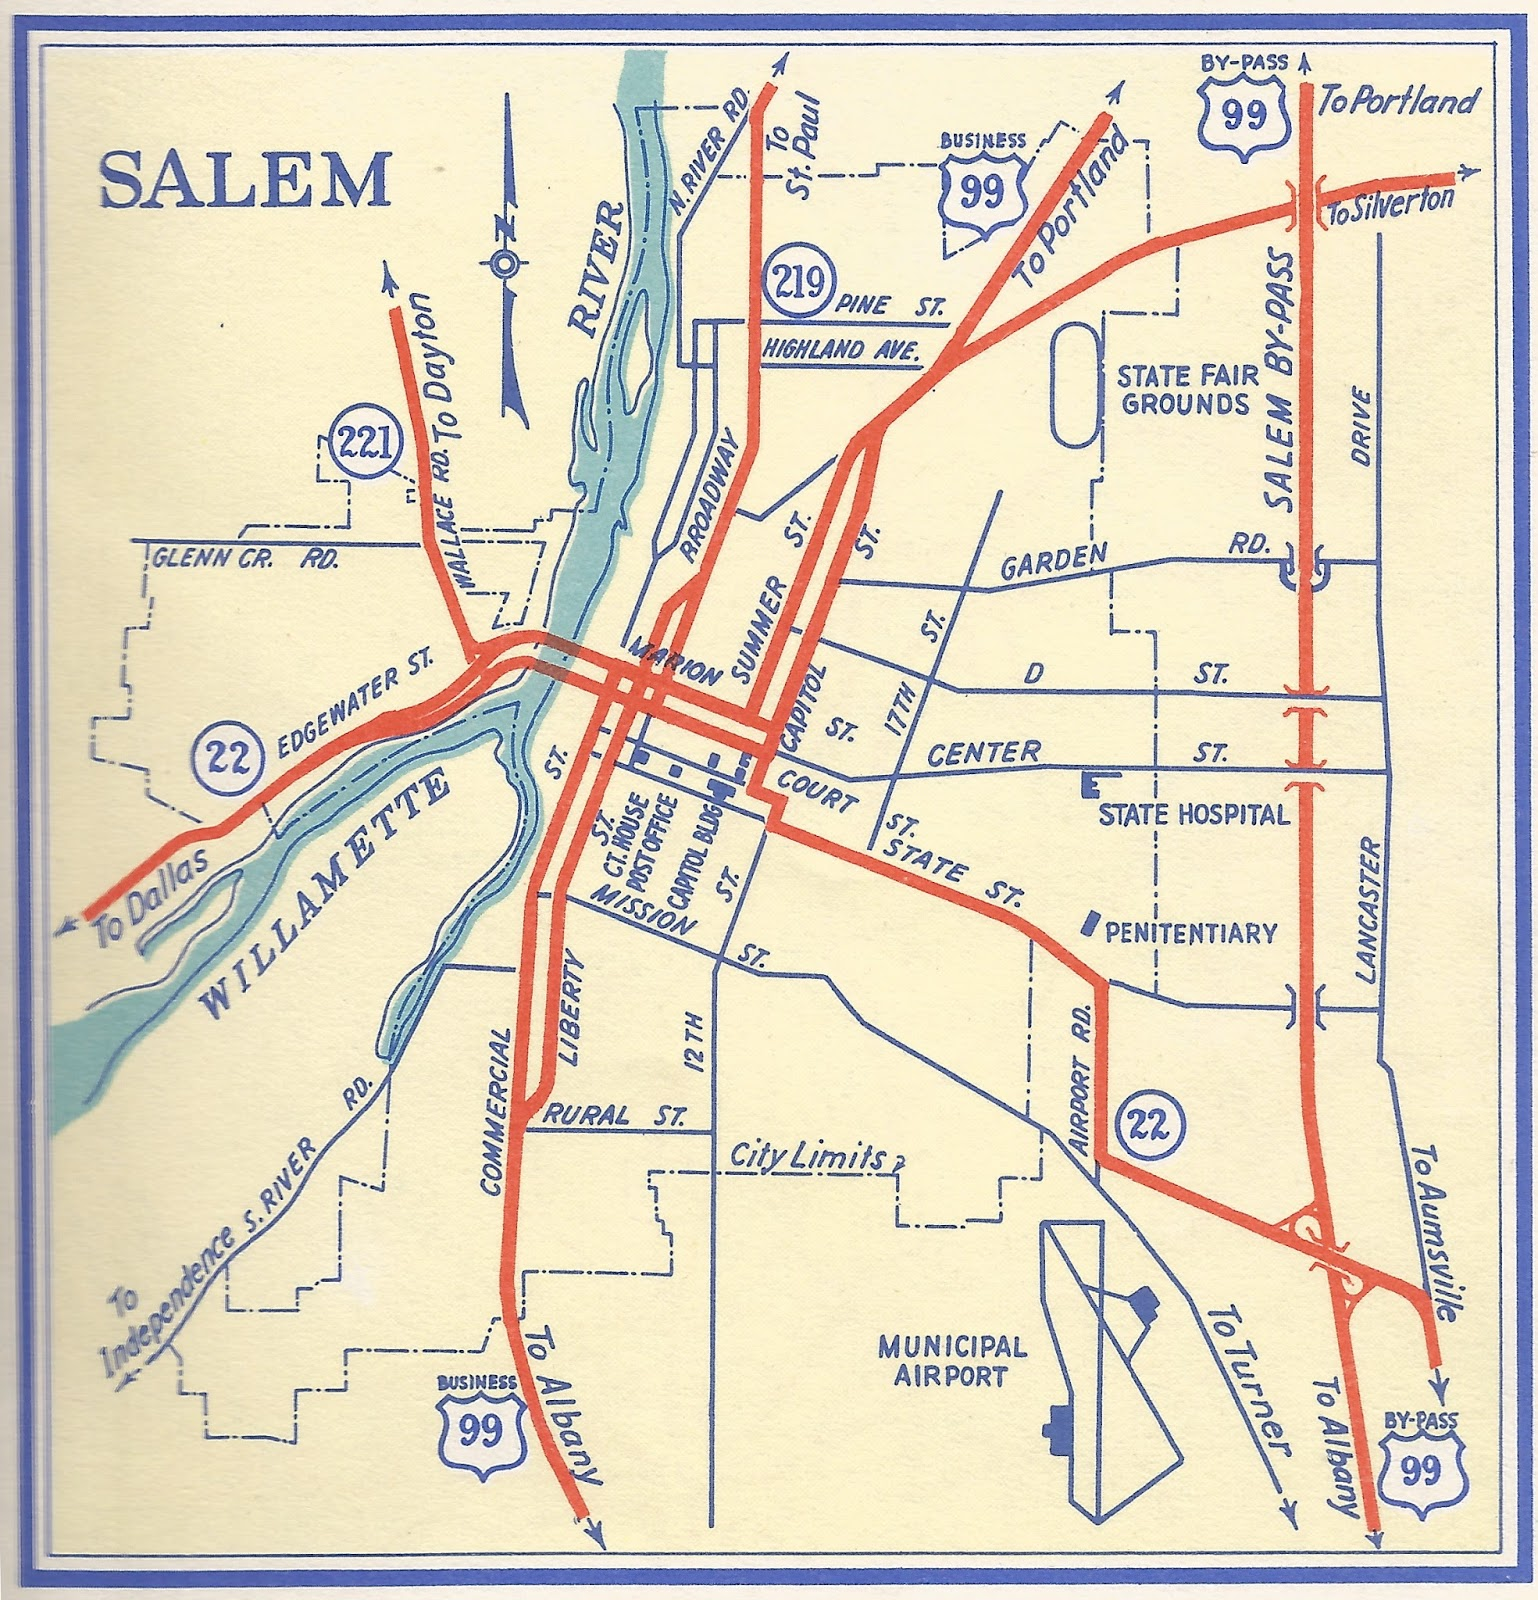 The ZehnKatzen Times: [maps] Salem, Oregon, Within Her 1956 ...